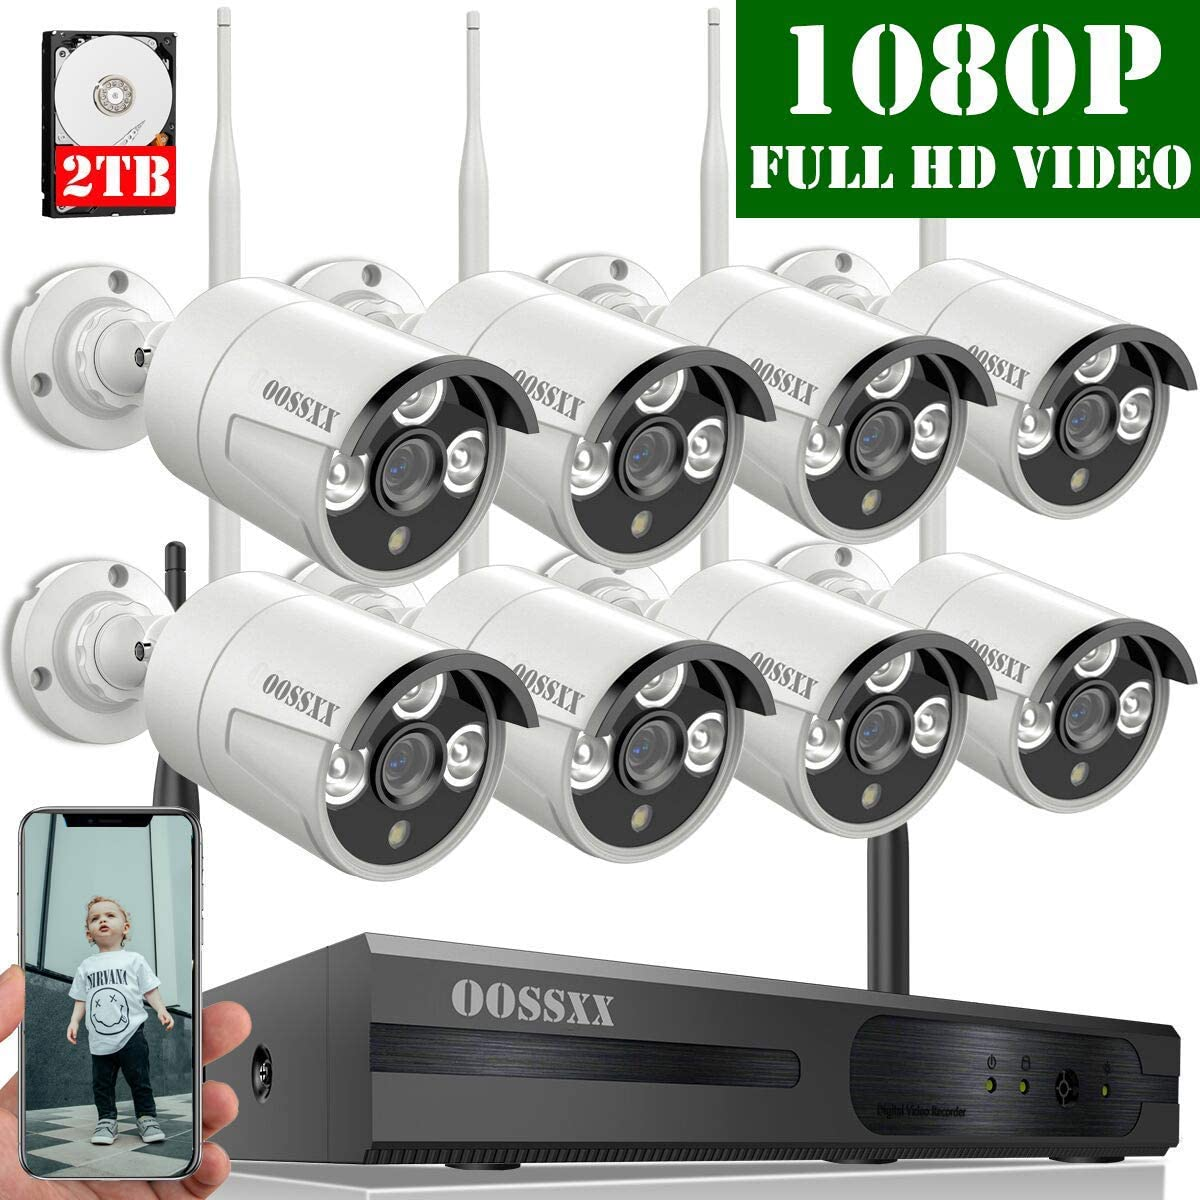 2020 Update OOSSXX 8-Channel HD 1080P Wireless Security Camera System,8Pcs 1080P 2.0 Megapixel Wireless Indoor Outdoor IR Bullet IP Cameras,P2P,App, HDMI Cord 2TB HDD Pre-Install